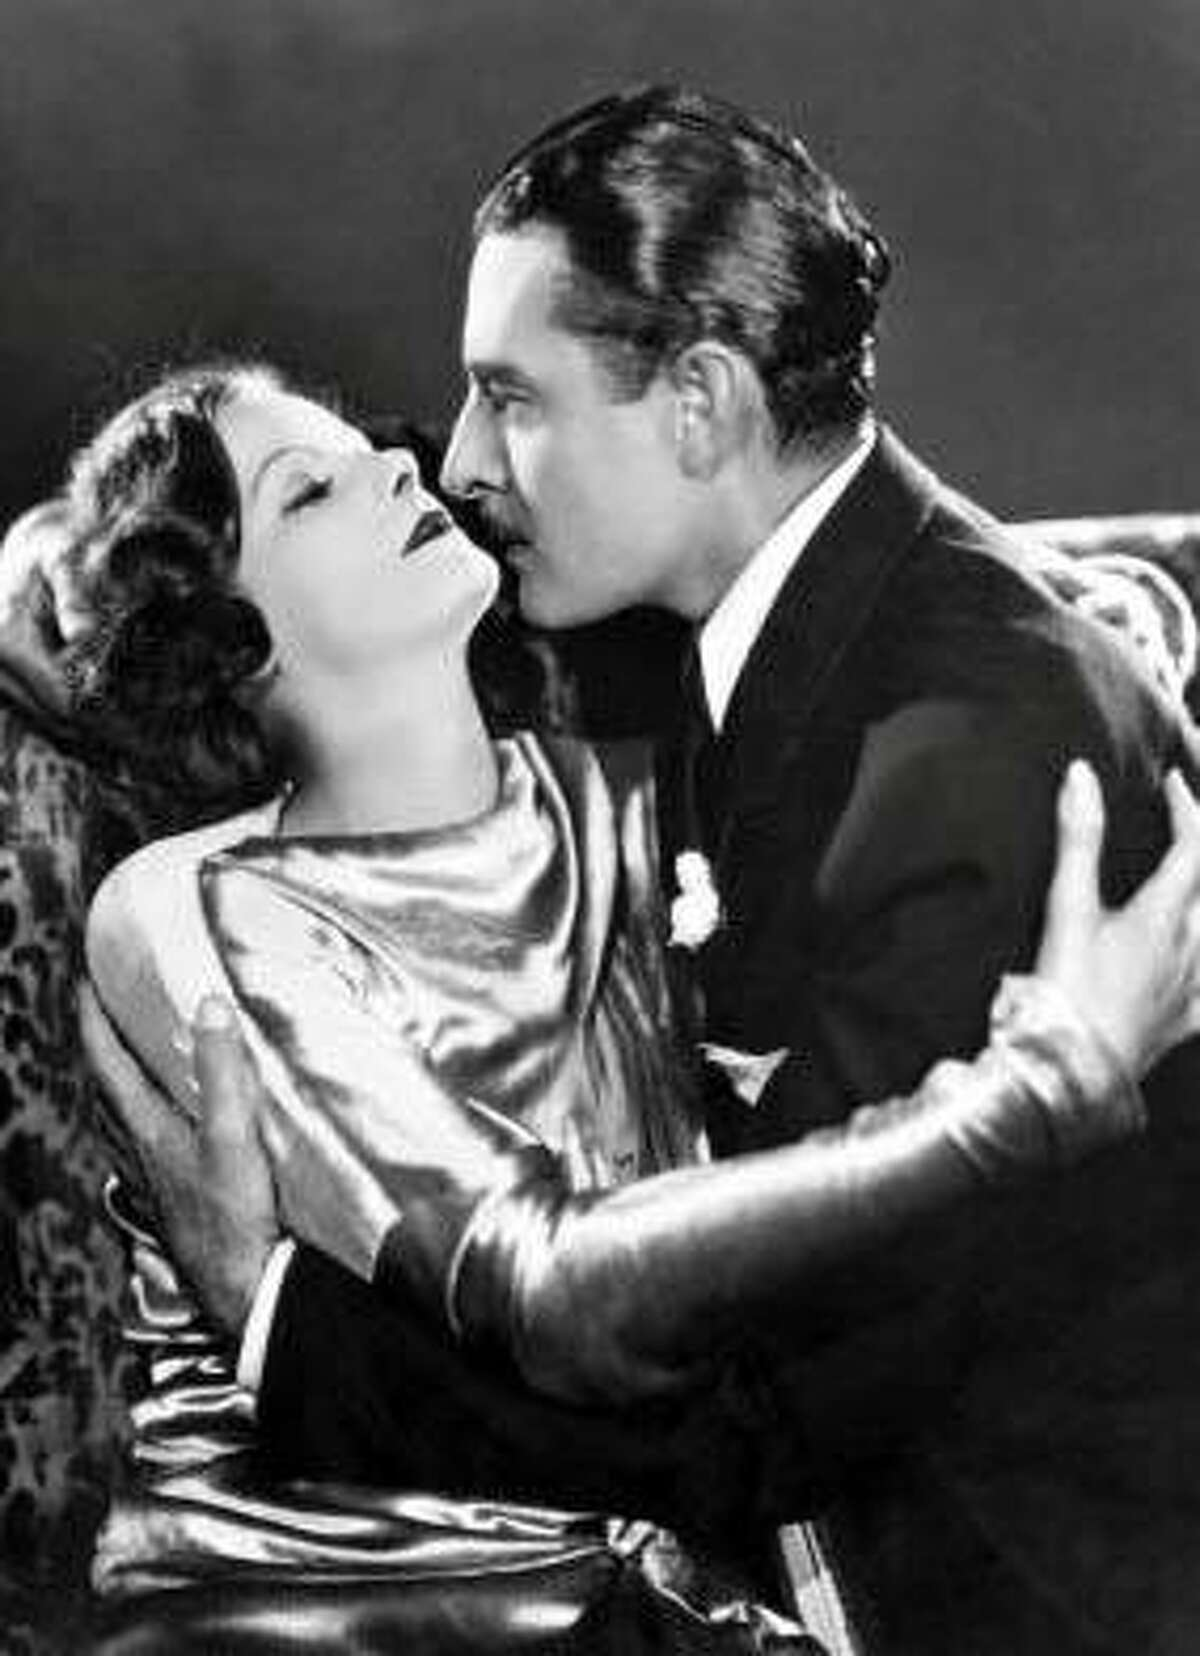 A WOMAN OF AFFAIRS: Garbo at her silent best. A great performance and gorgeous compositions and cinematography.